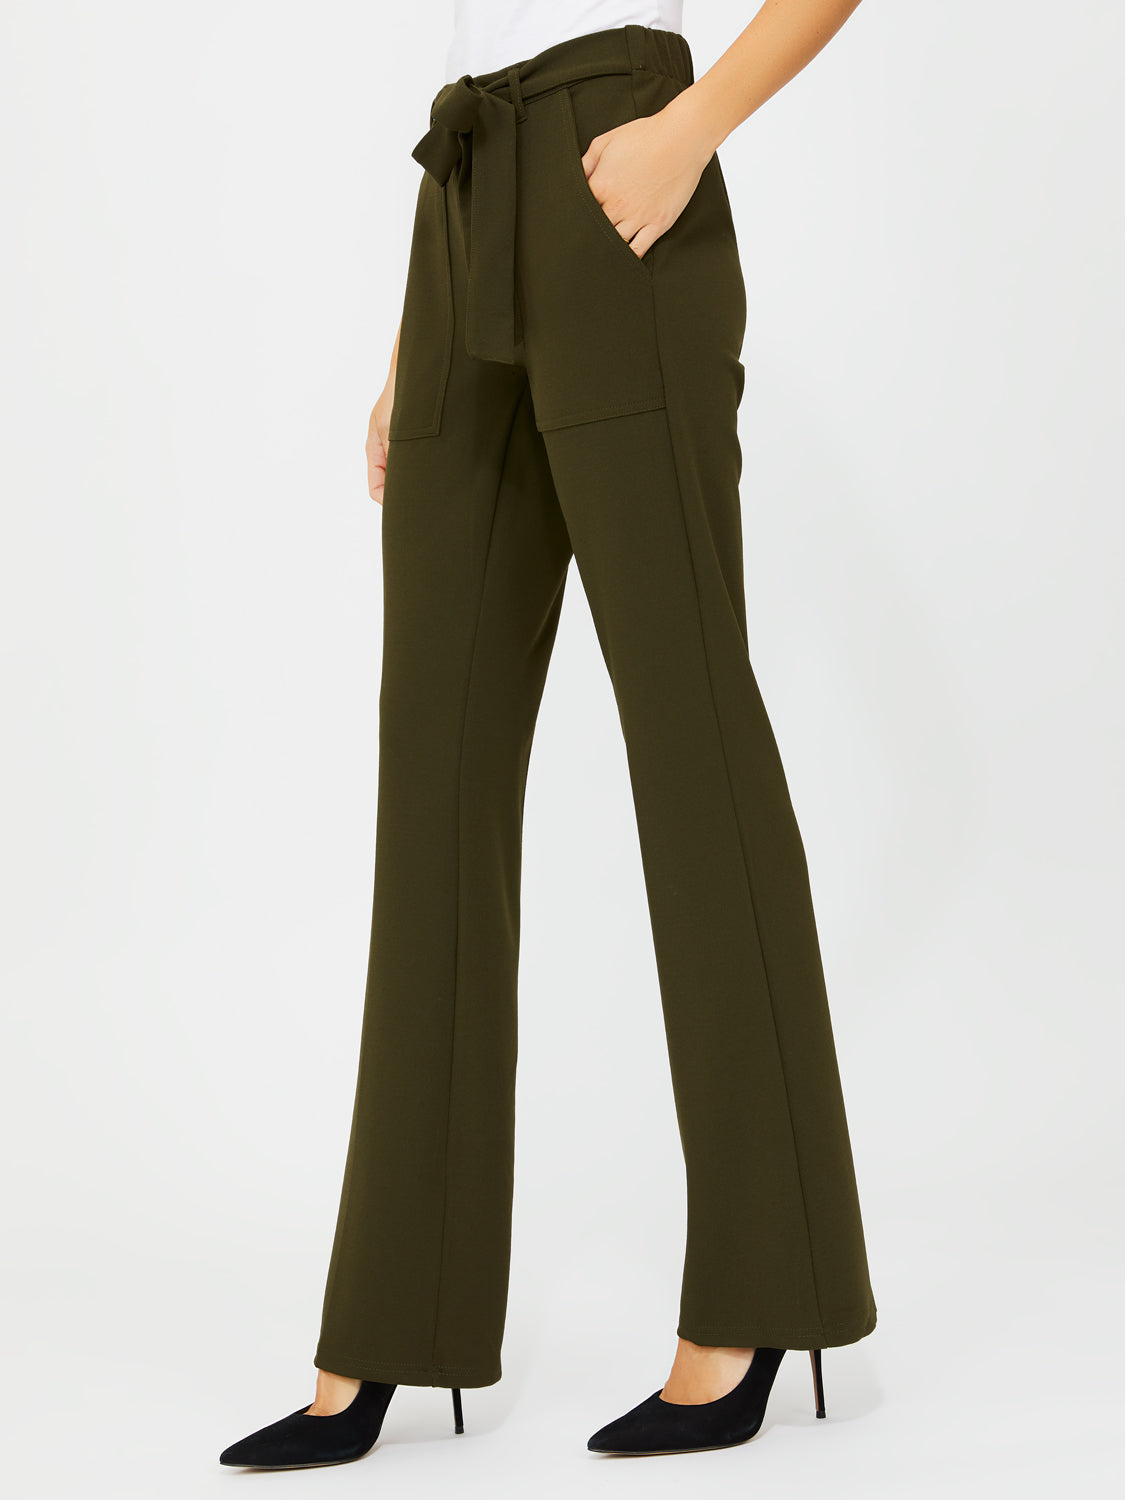 Knit Crepe Flared Pants With Sash Tie